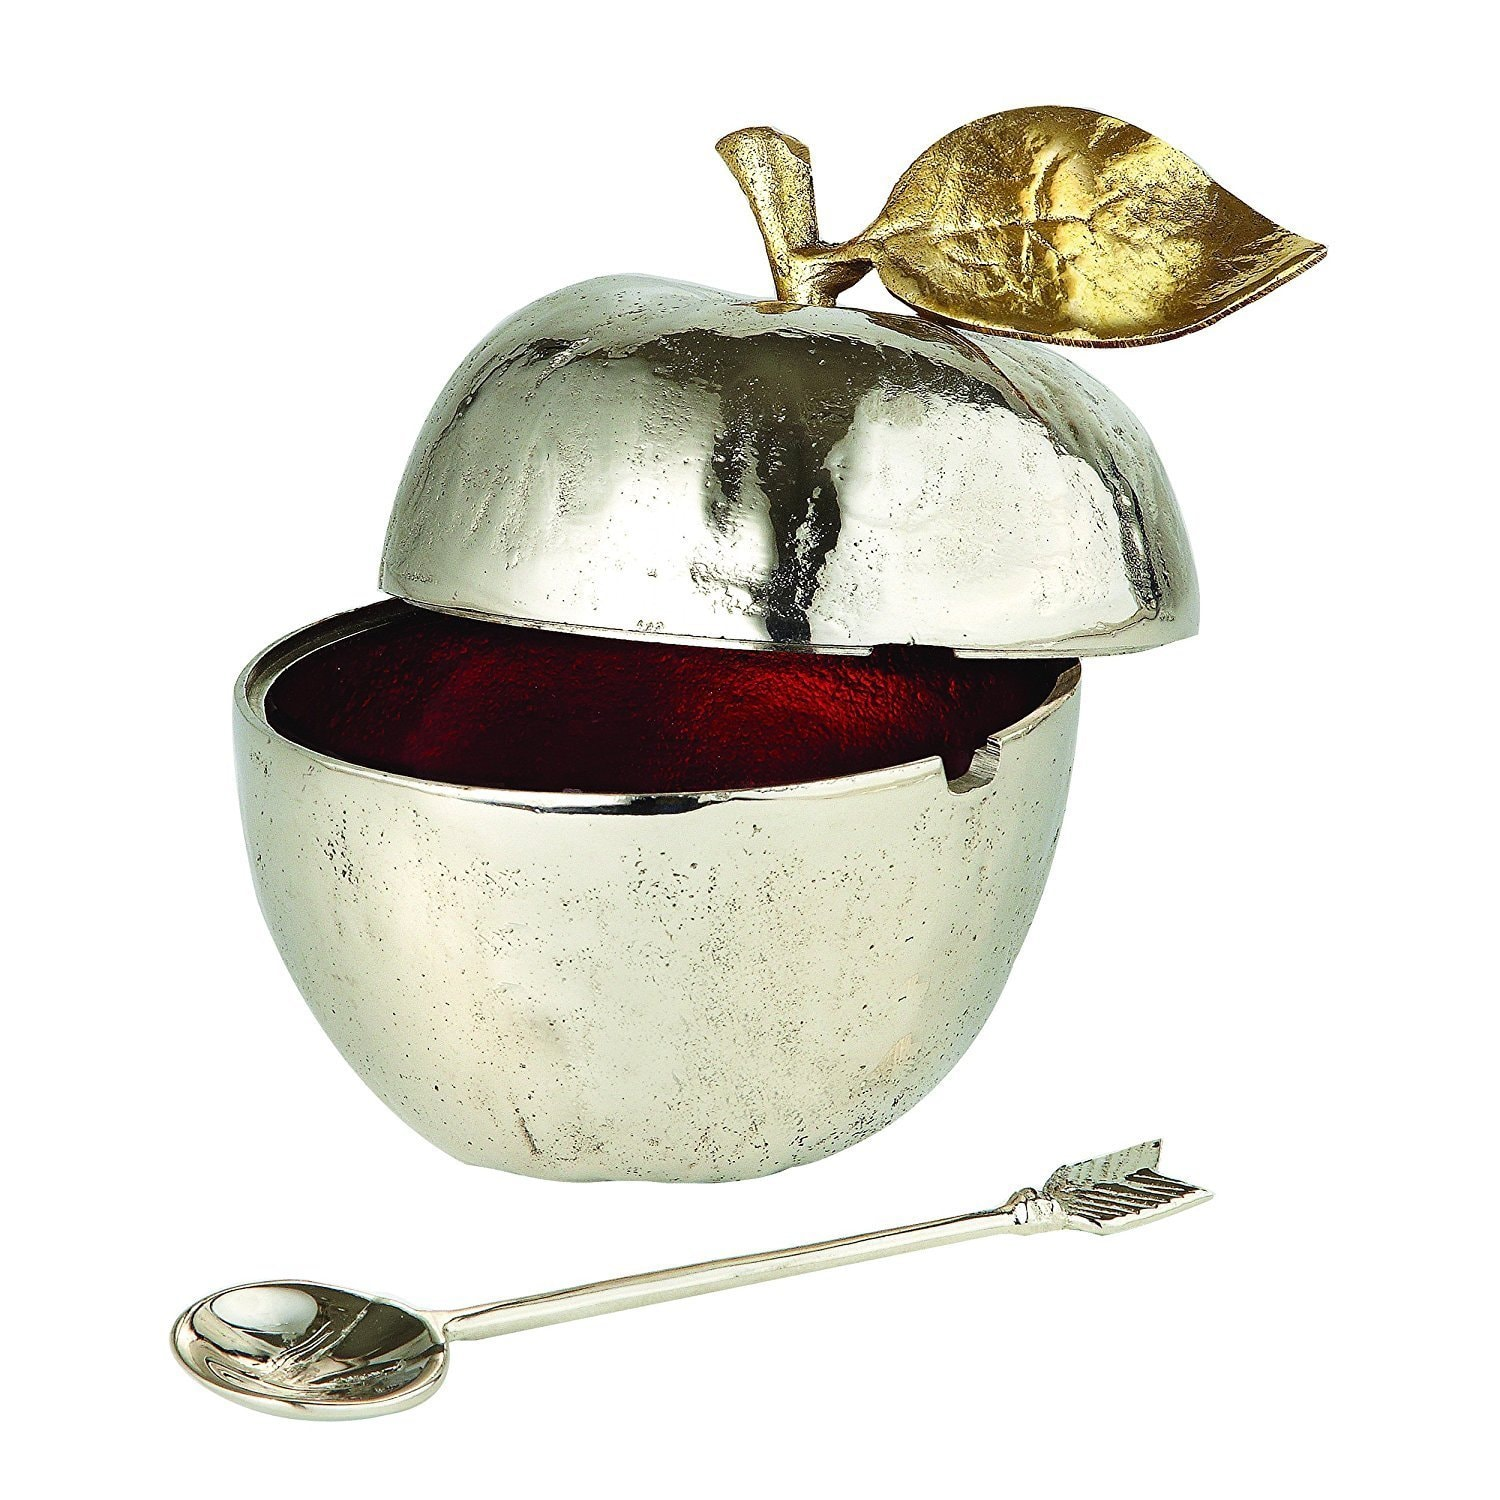 Click here to buy Leeber Golden Vine Honey Pot with Spoon, 2.5 X 2.5 X 4 In. by Leeber.